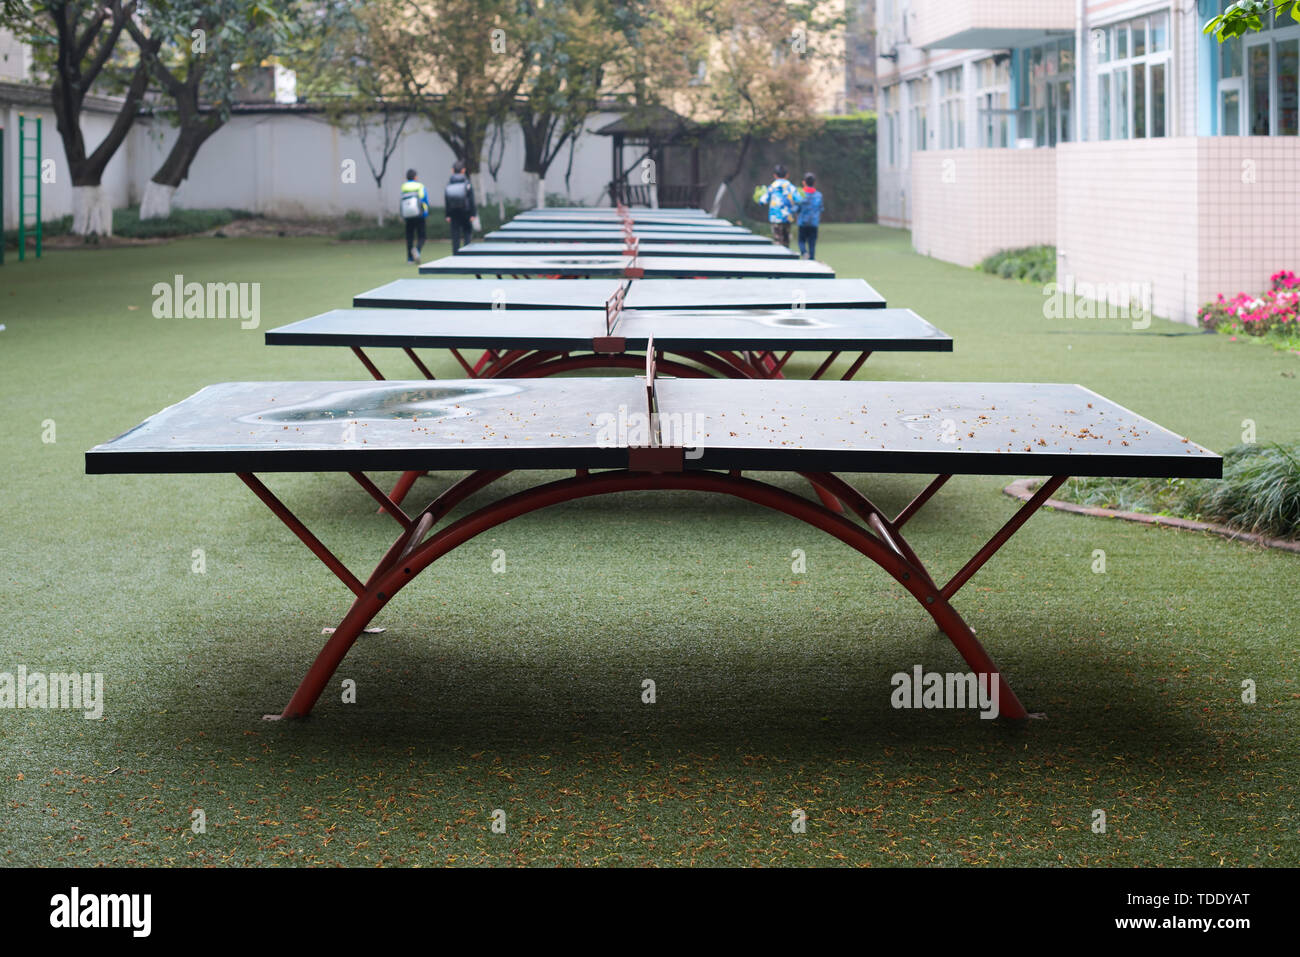 Chengdu, Sichuan Province, China - March 31, 2017: a row of ping pong tables in a chinese school - Stock Image